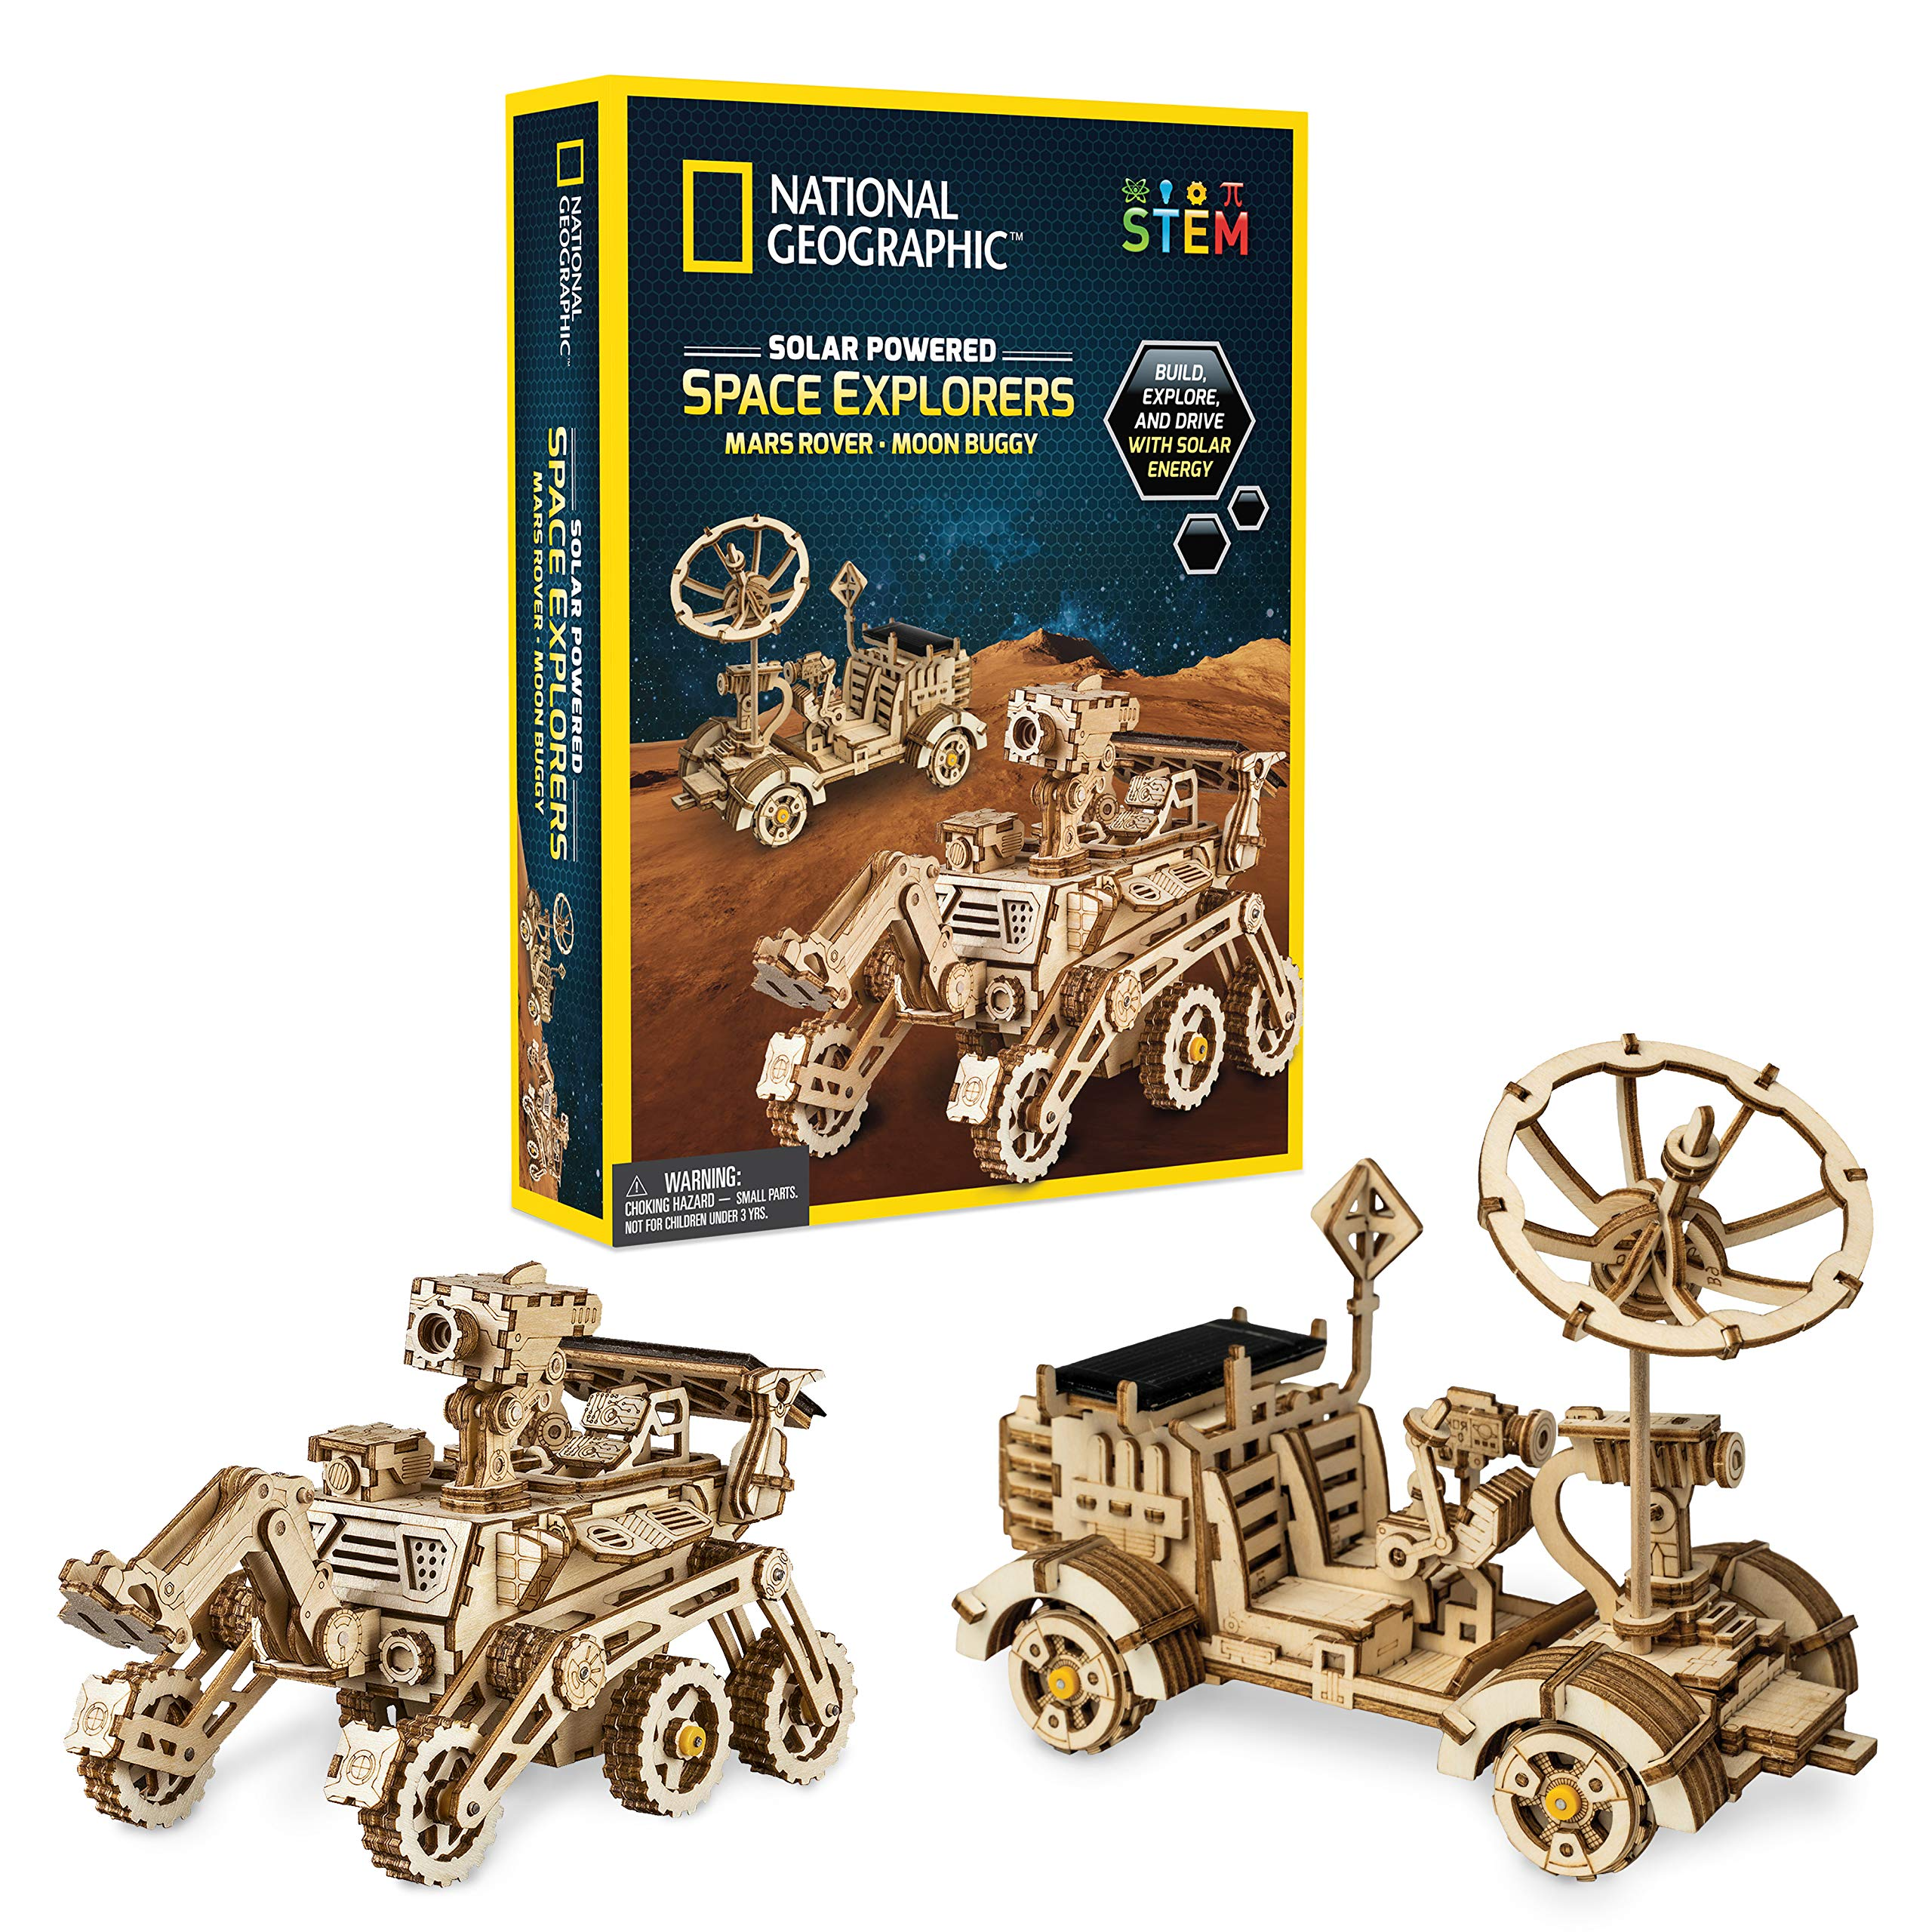 NATIONAL GEOGRAPHIC Solar Space Explorers - DIY Moon Buggy and Mars Rover Model Kit, Each Powered by a Solar Panel, Great STEM Toy for Girls and Boys Interested in Outer Space and Engineering by NATIONAL GEOGRAPHIC